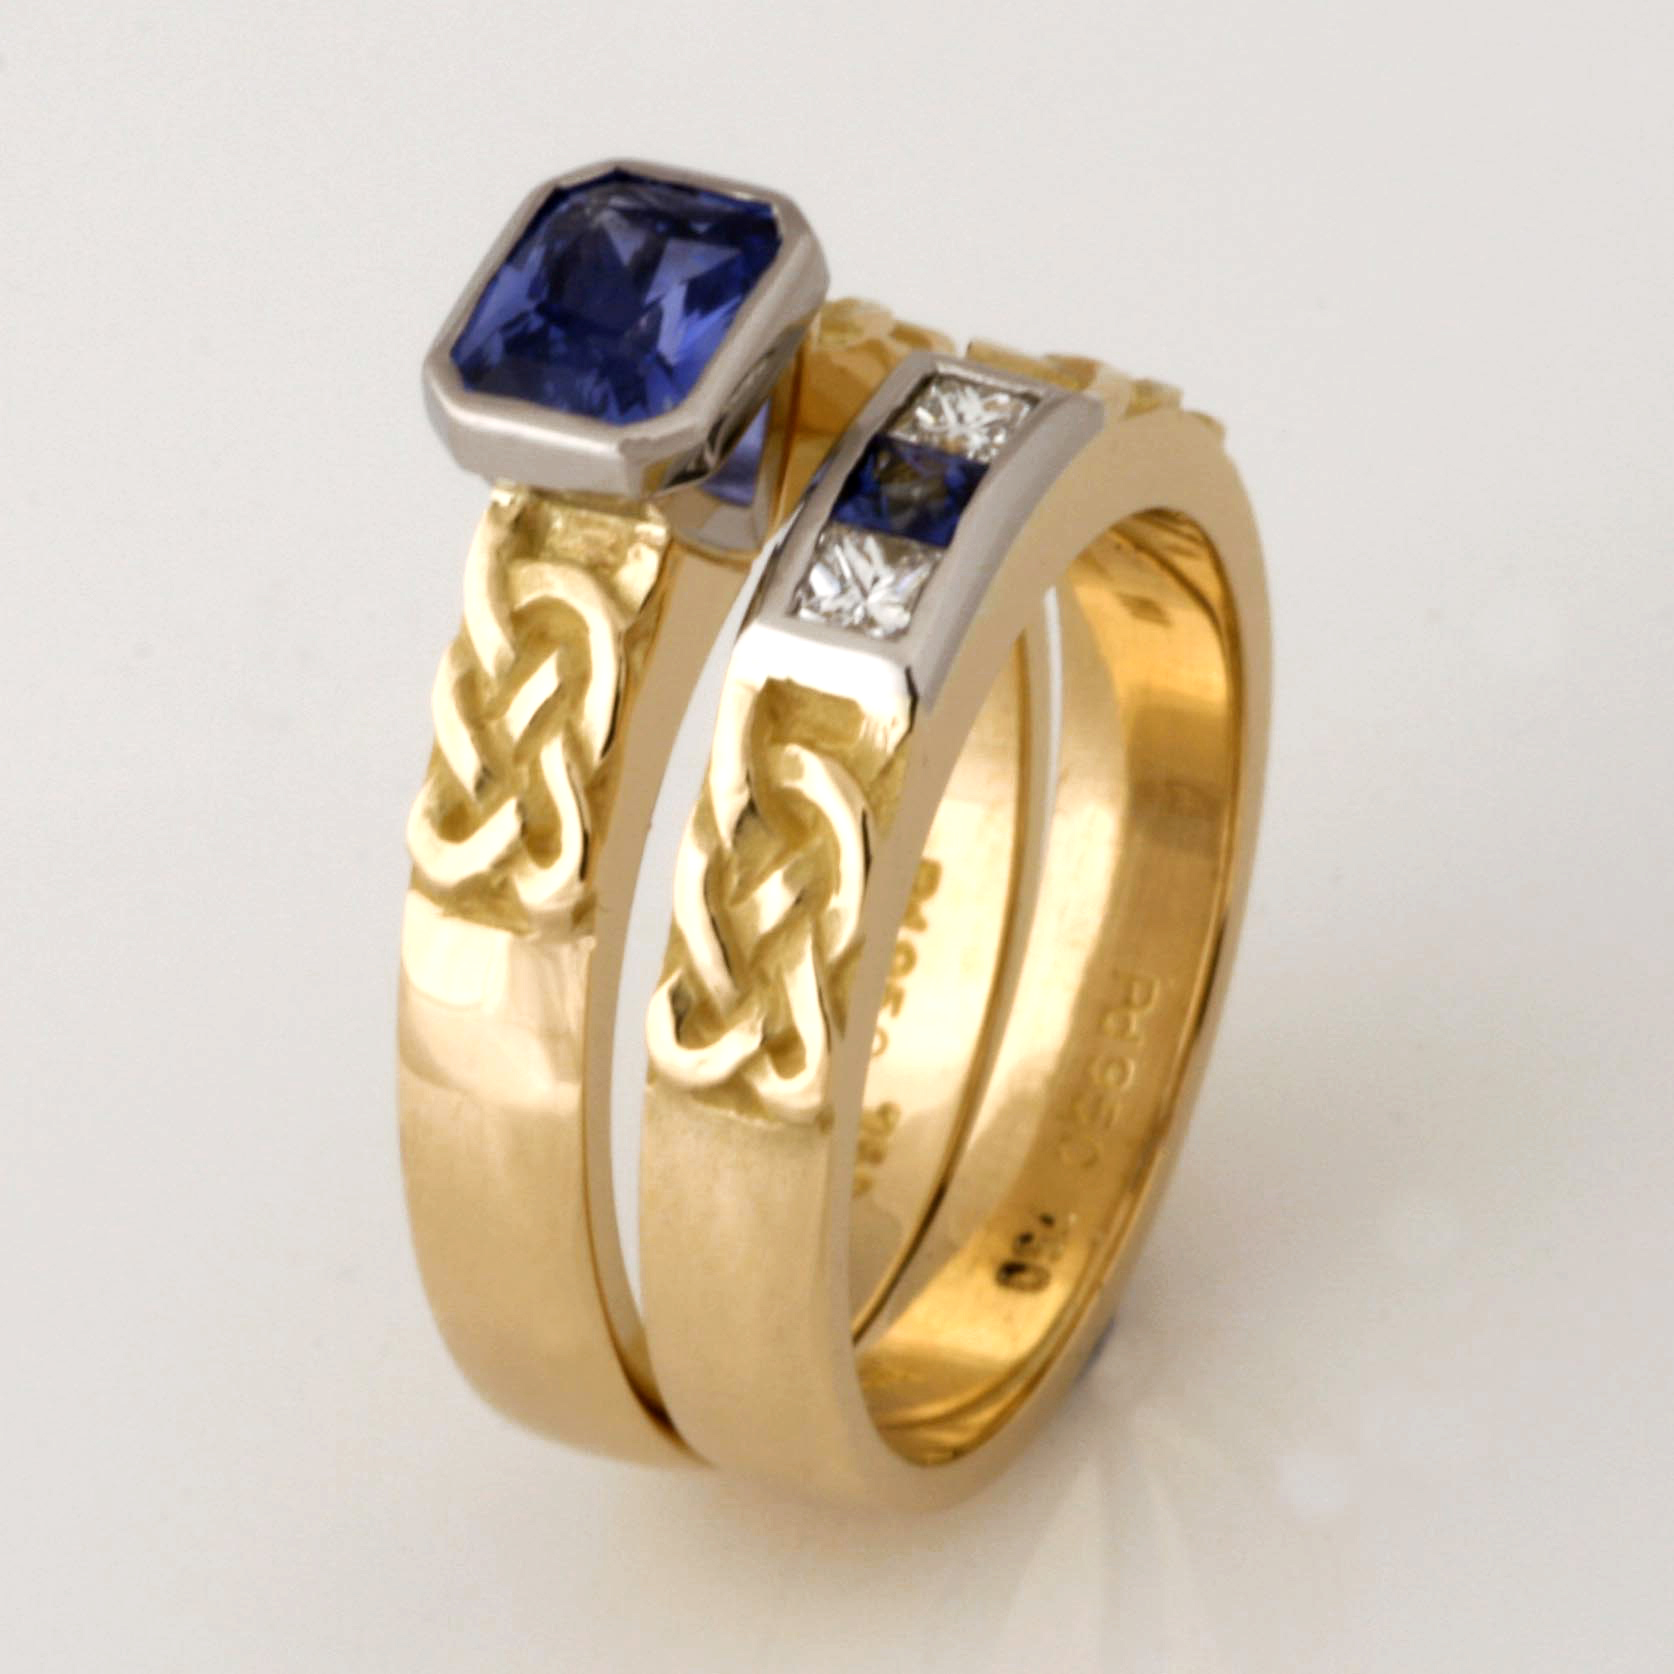 Handmade ladies 18ct yellow gold and palladium hand engraved wedding and engagement ring set featuring Ceylon sapphires